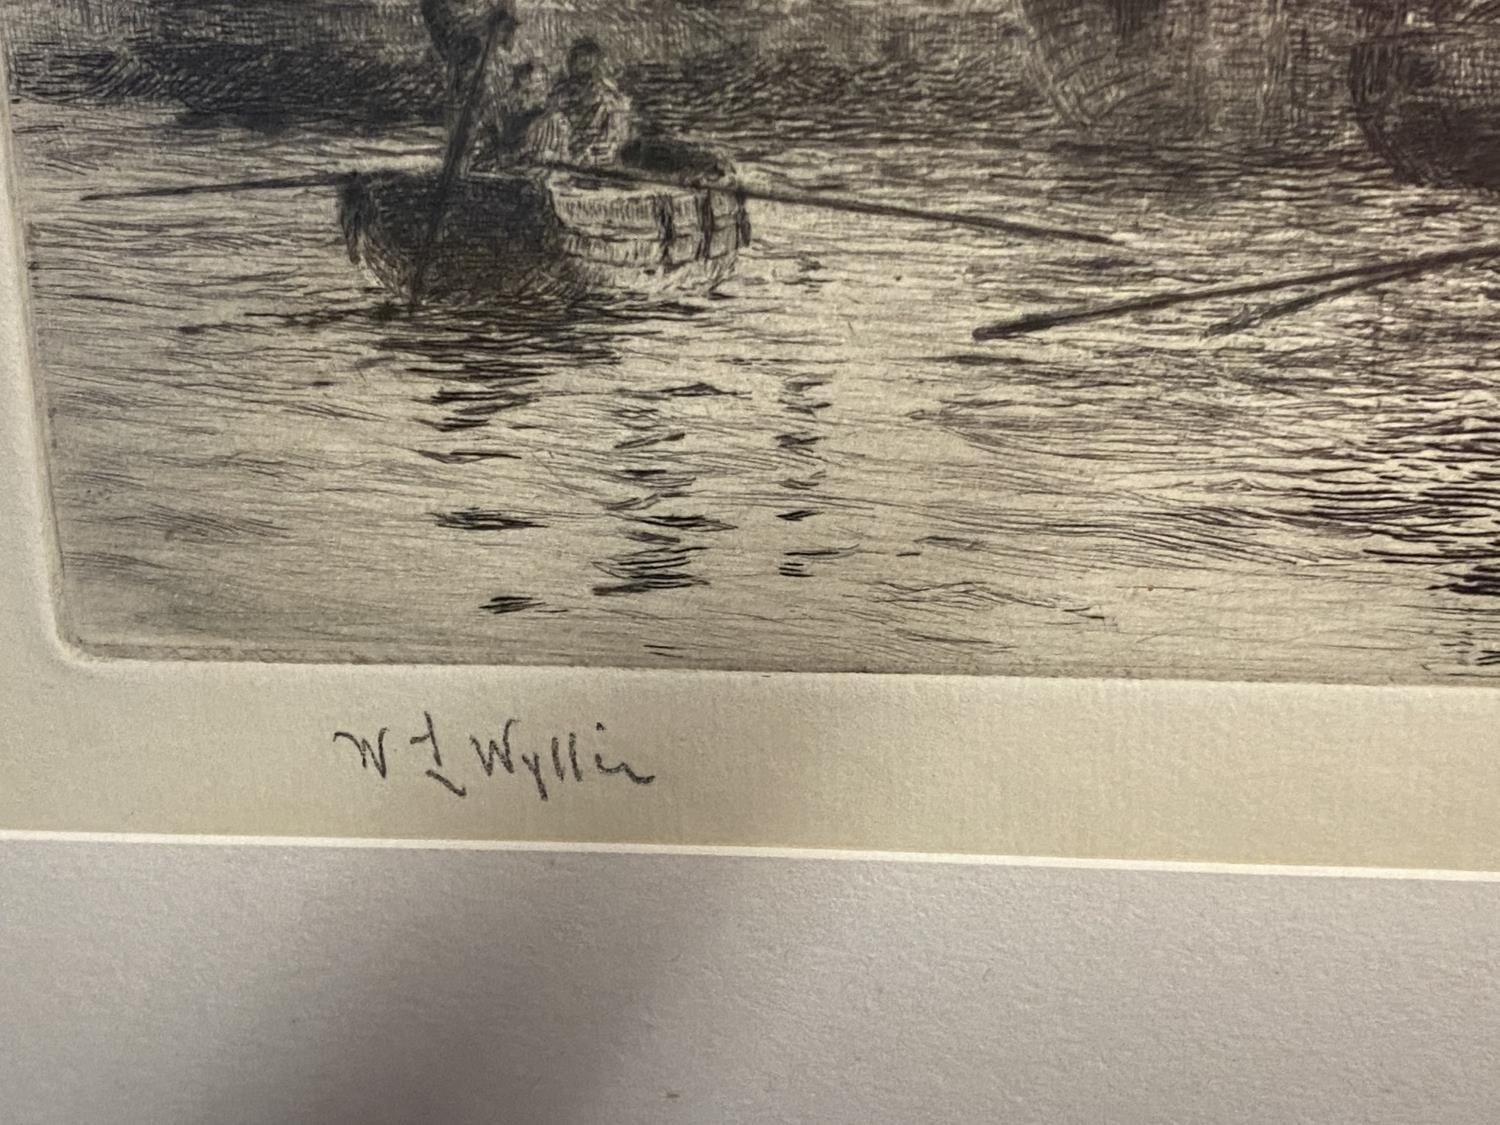 William Wylie, (1851-1931-), etching, Man of War with tugs in harbour, signed in pencil lower left - Image 3 of 12